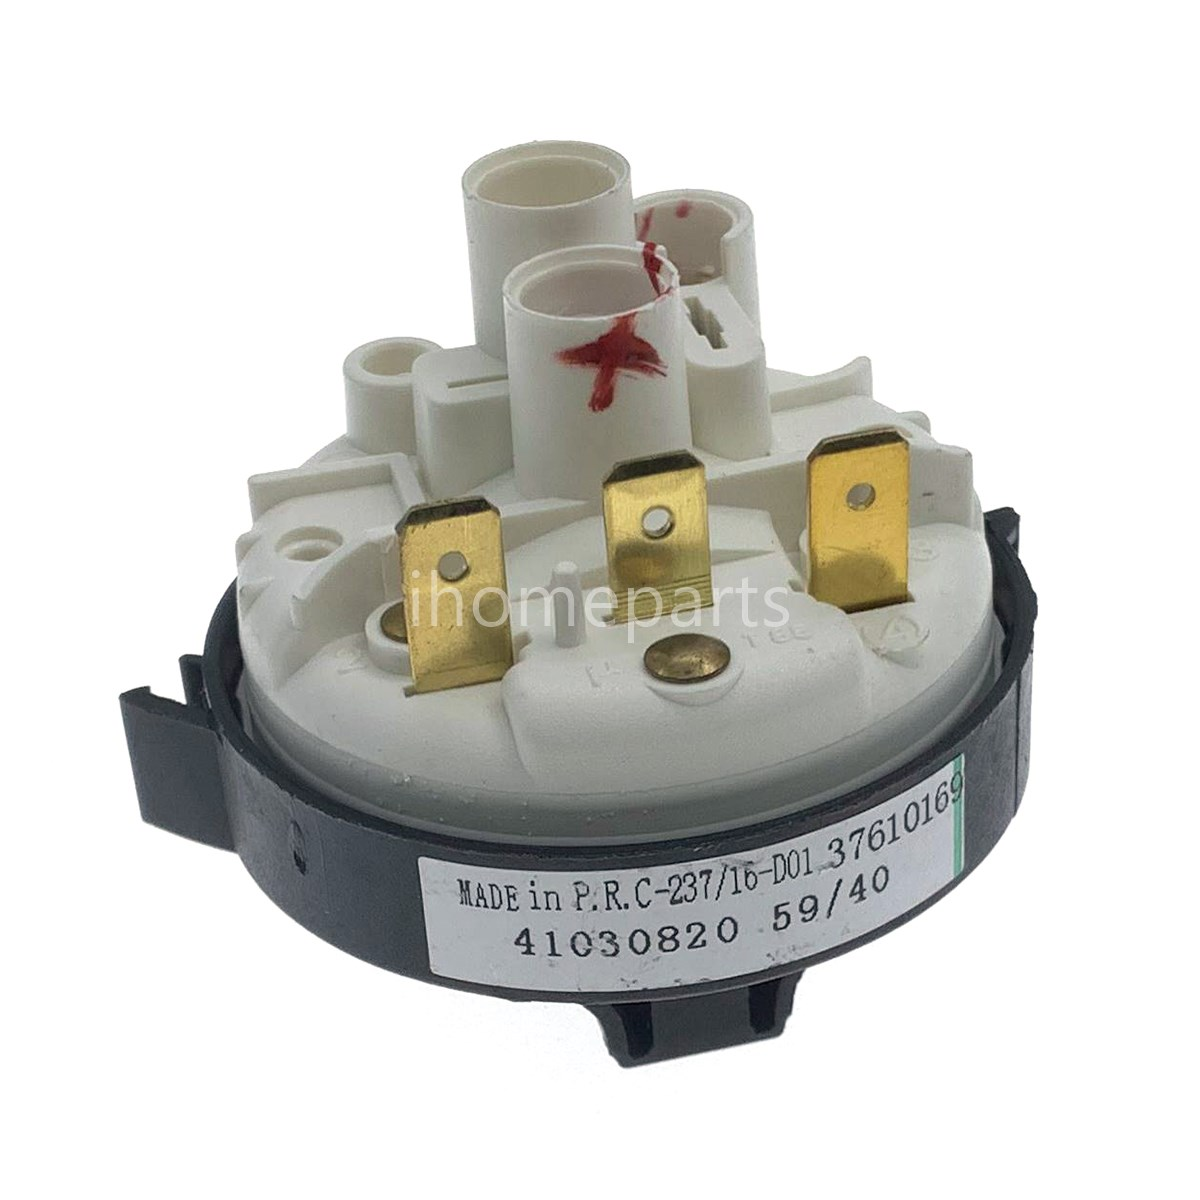 237/16-D01 41030820 Dishwasher Parts Water Lever Pressure Switch for CANDY / HOOVER / ROSIERES